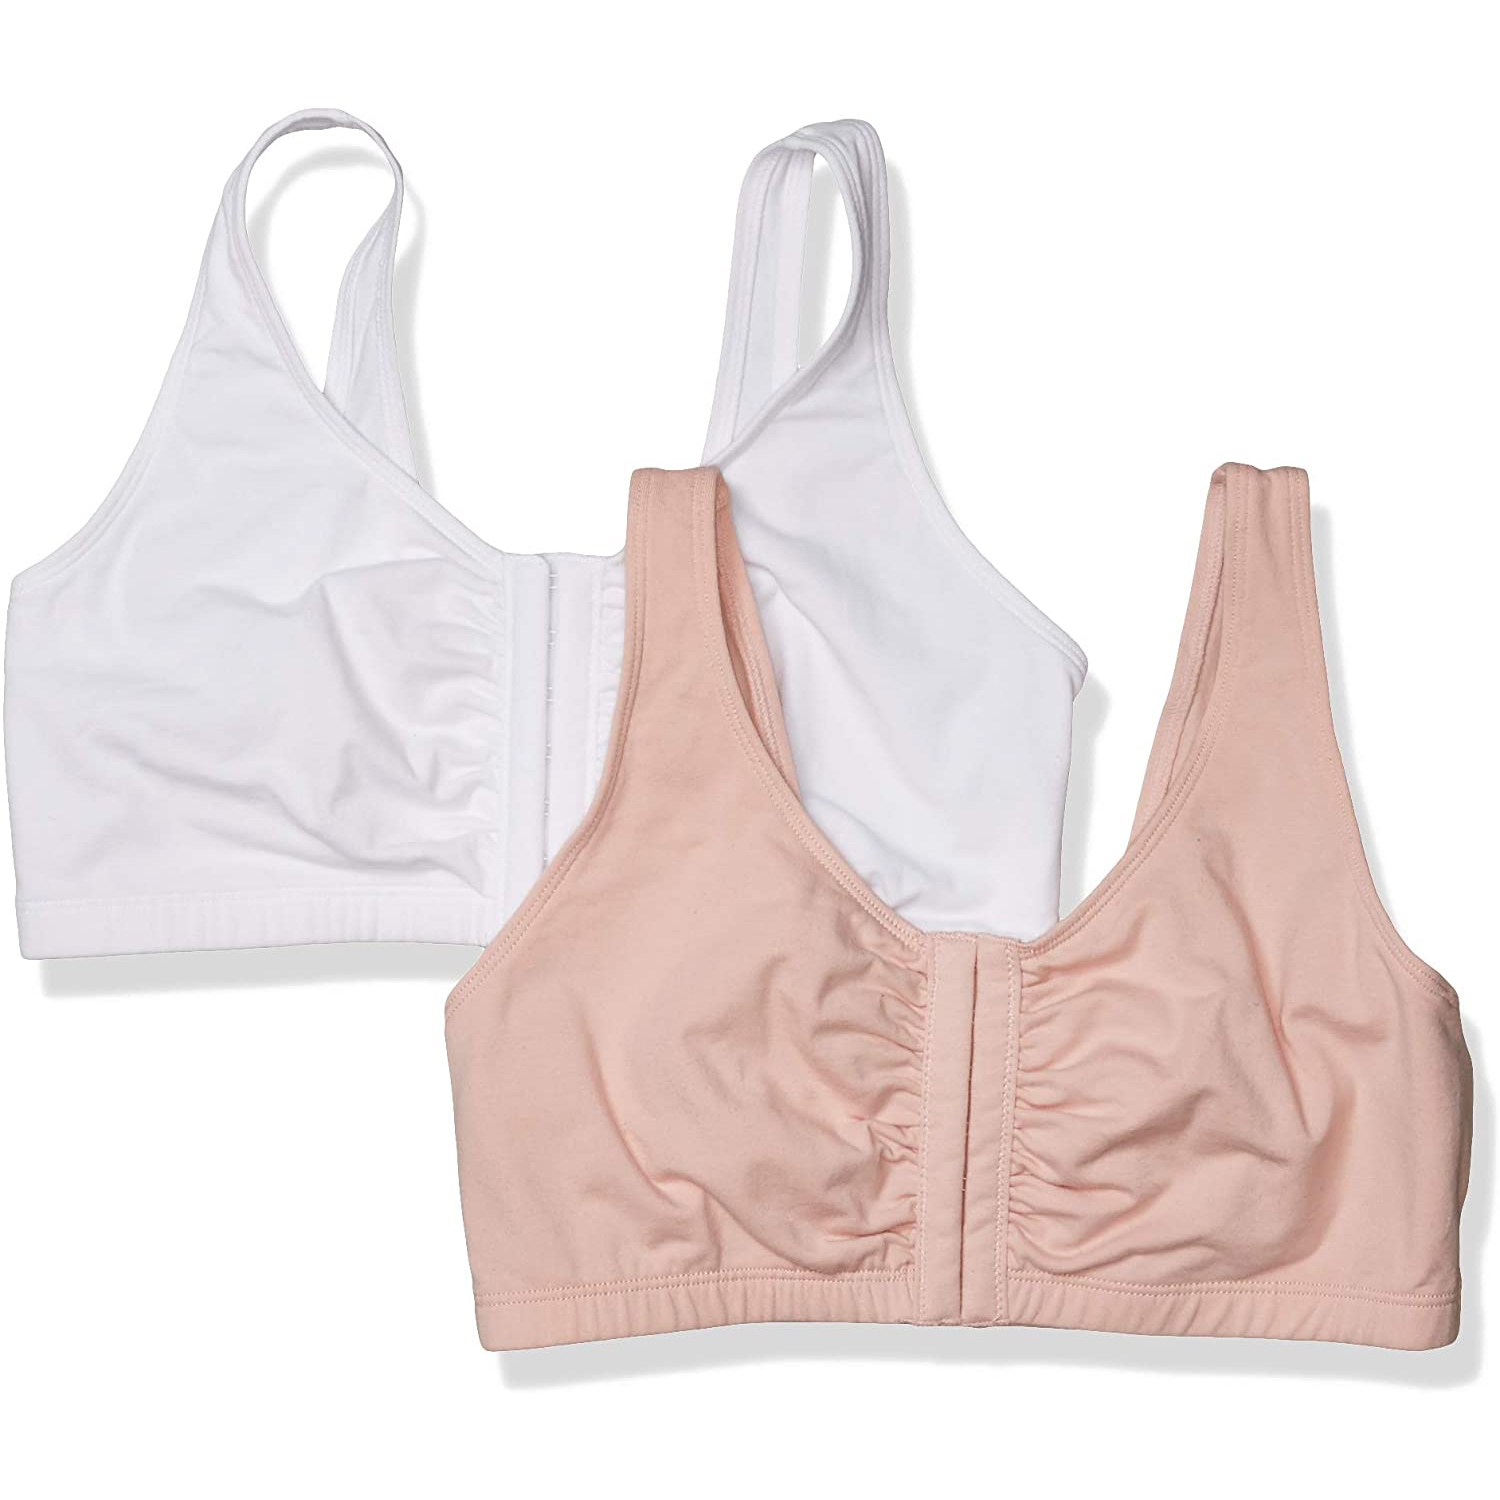 Fruit of the Loom Front Closure Cotton Bra